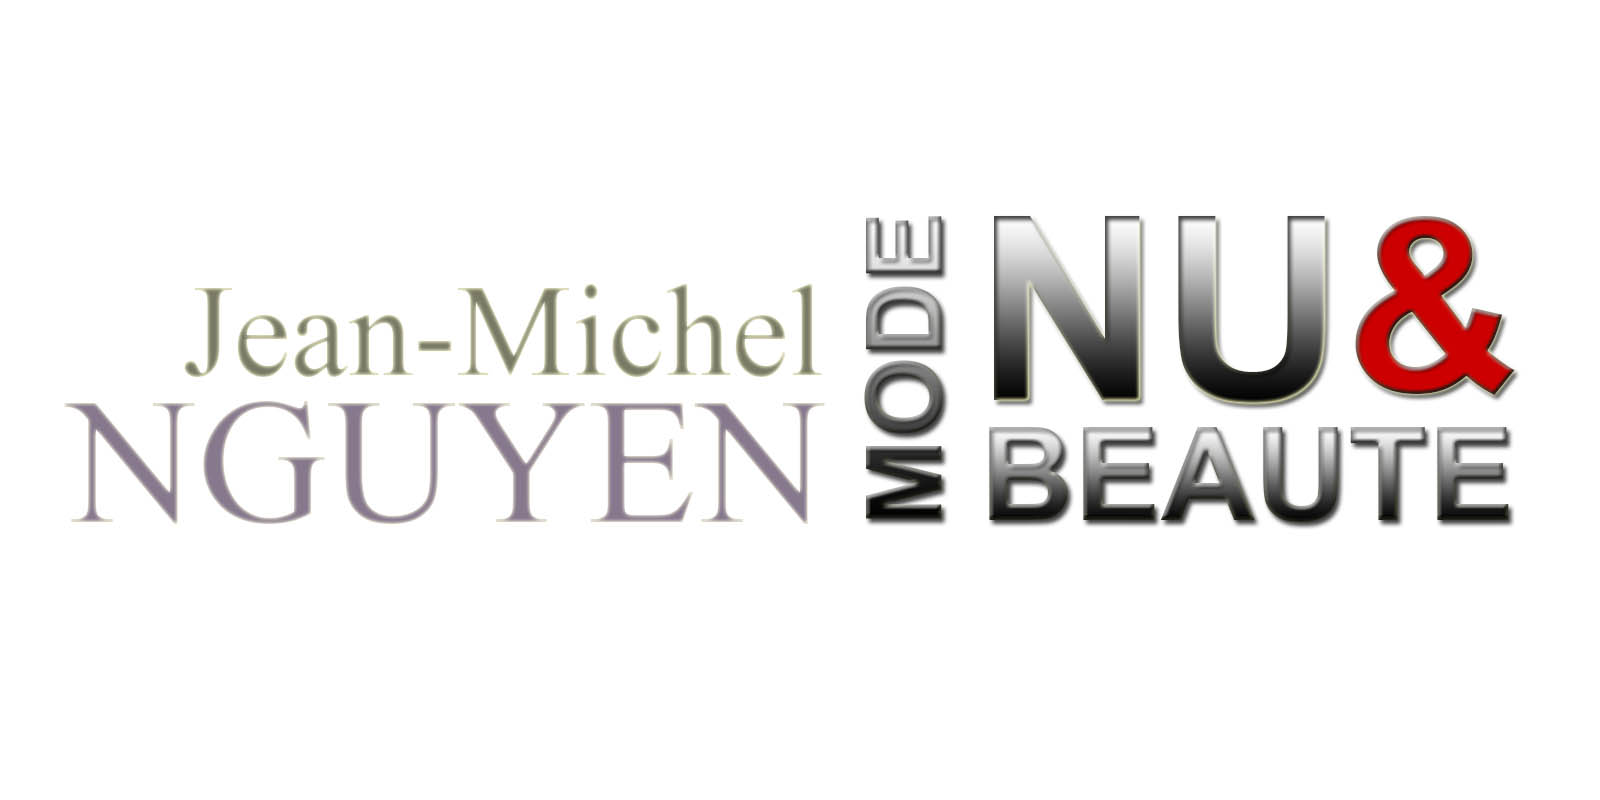 Jean-Michel Nguyen is published on NUMAG Nude Editorial Magazine, and he loves it